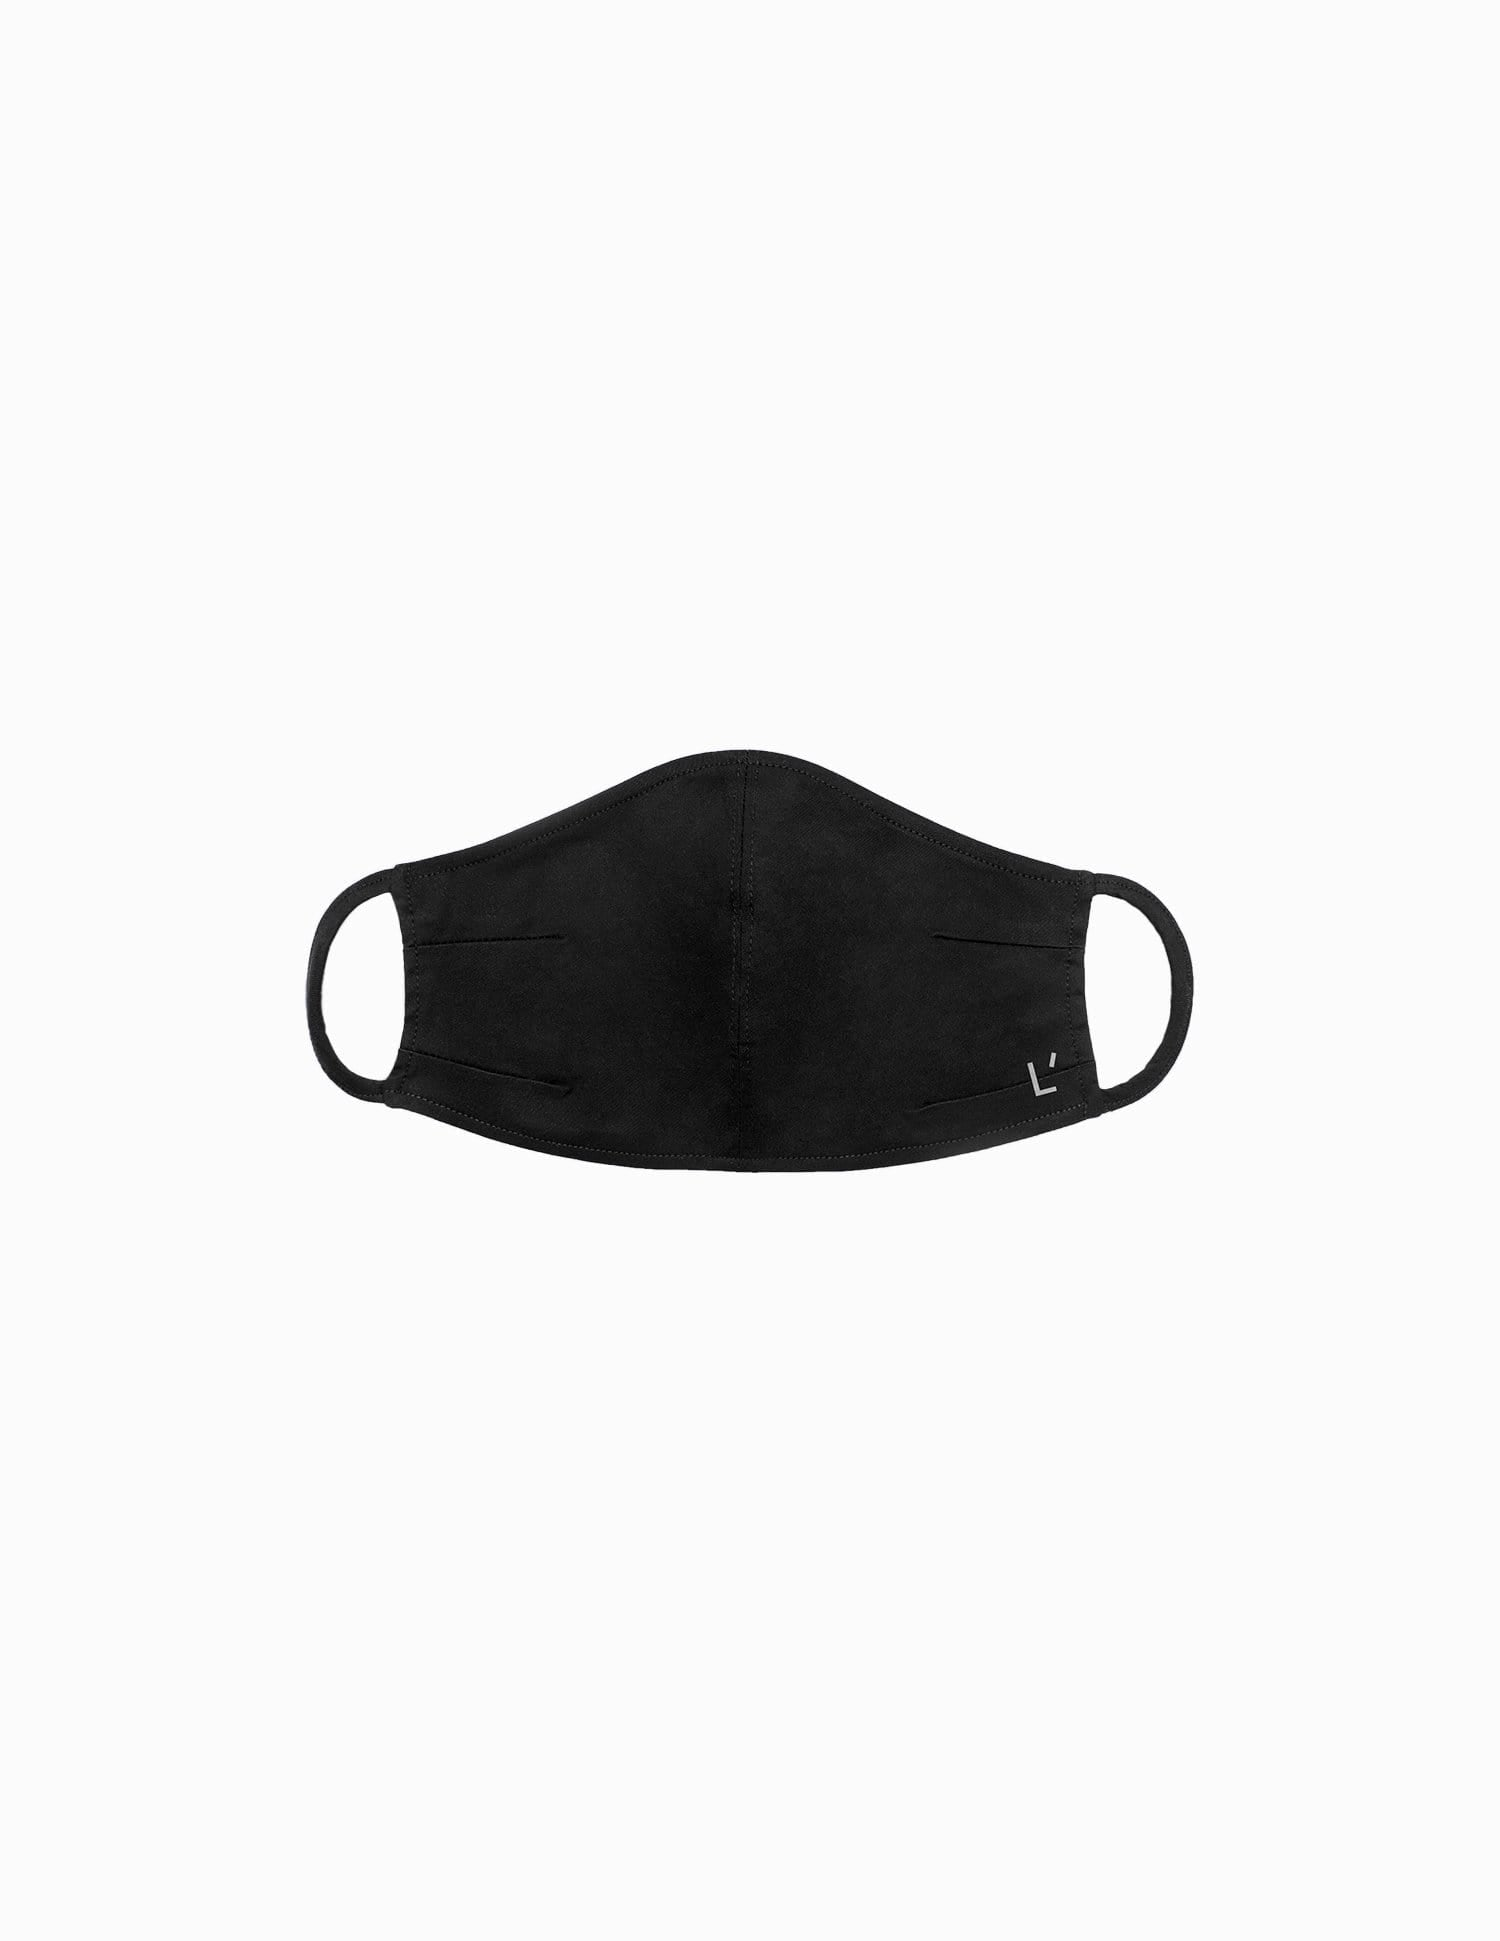 The 24 Mask || Black | Stretch Cotton ONE-SIZE